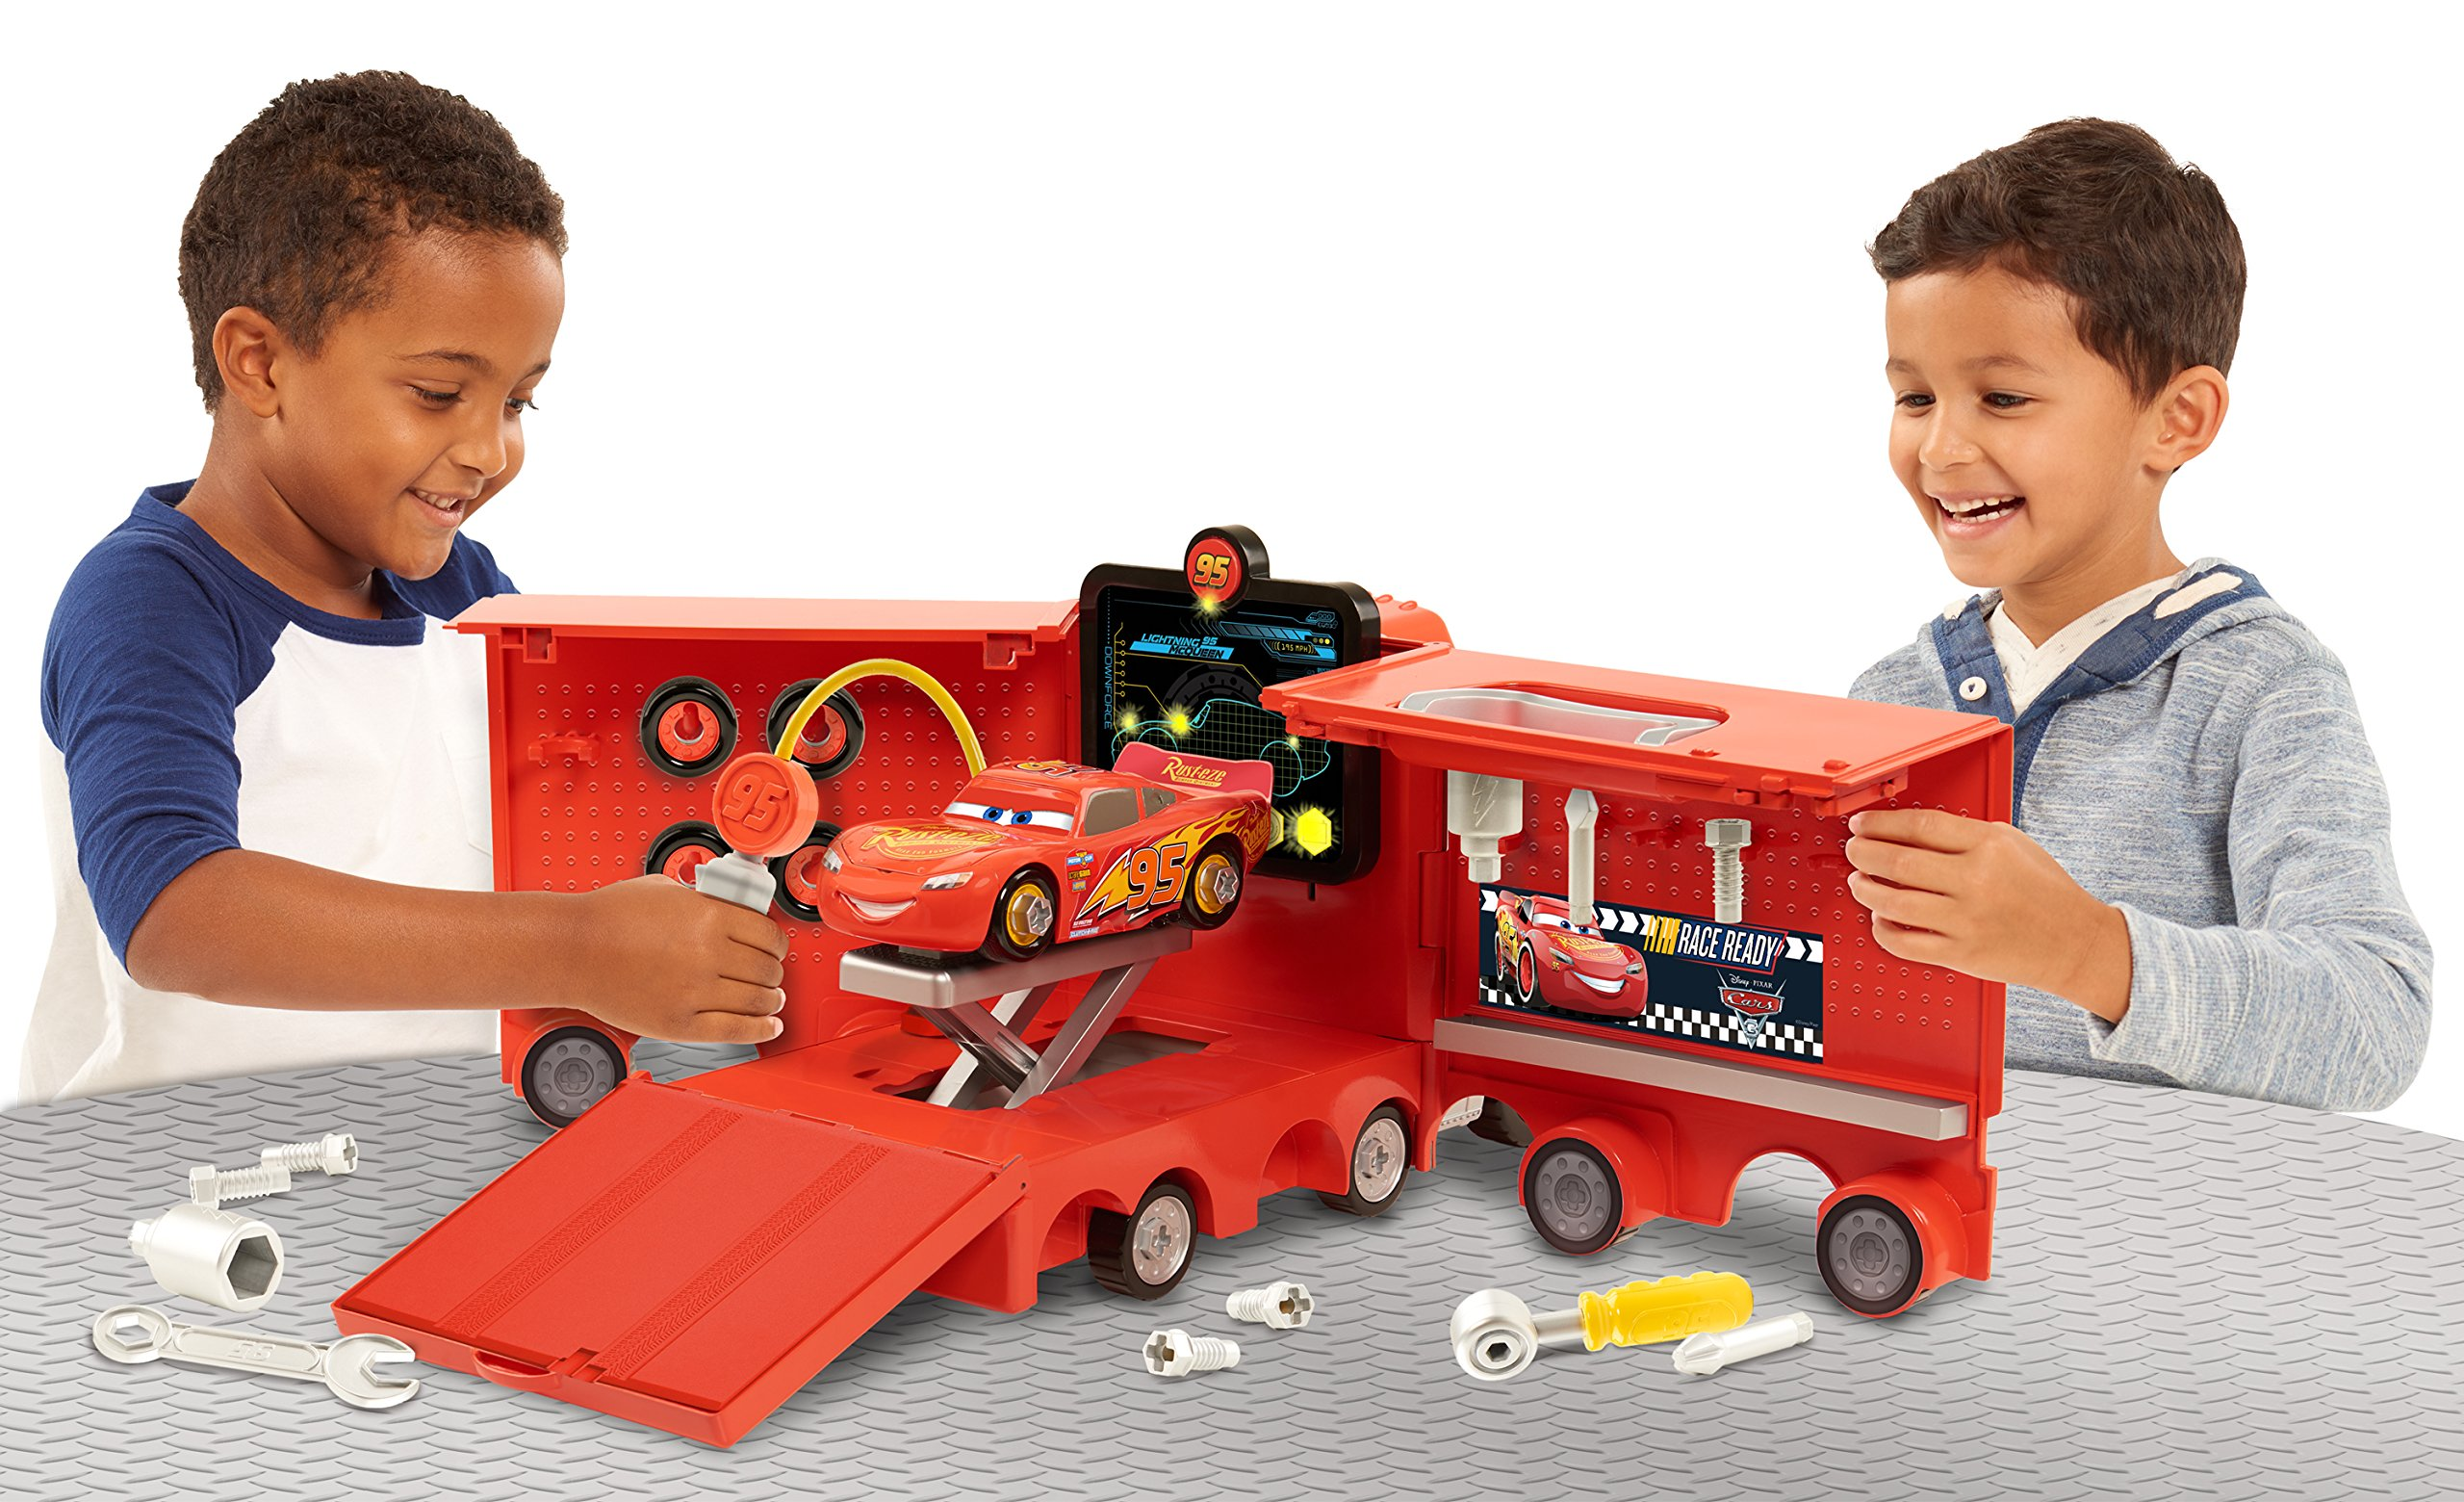 Cars 3 Macks Mobile Tool Center by Cars 3 (Image #3)